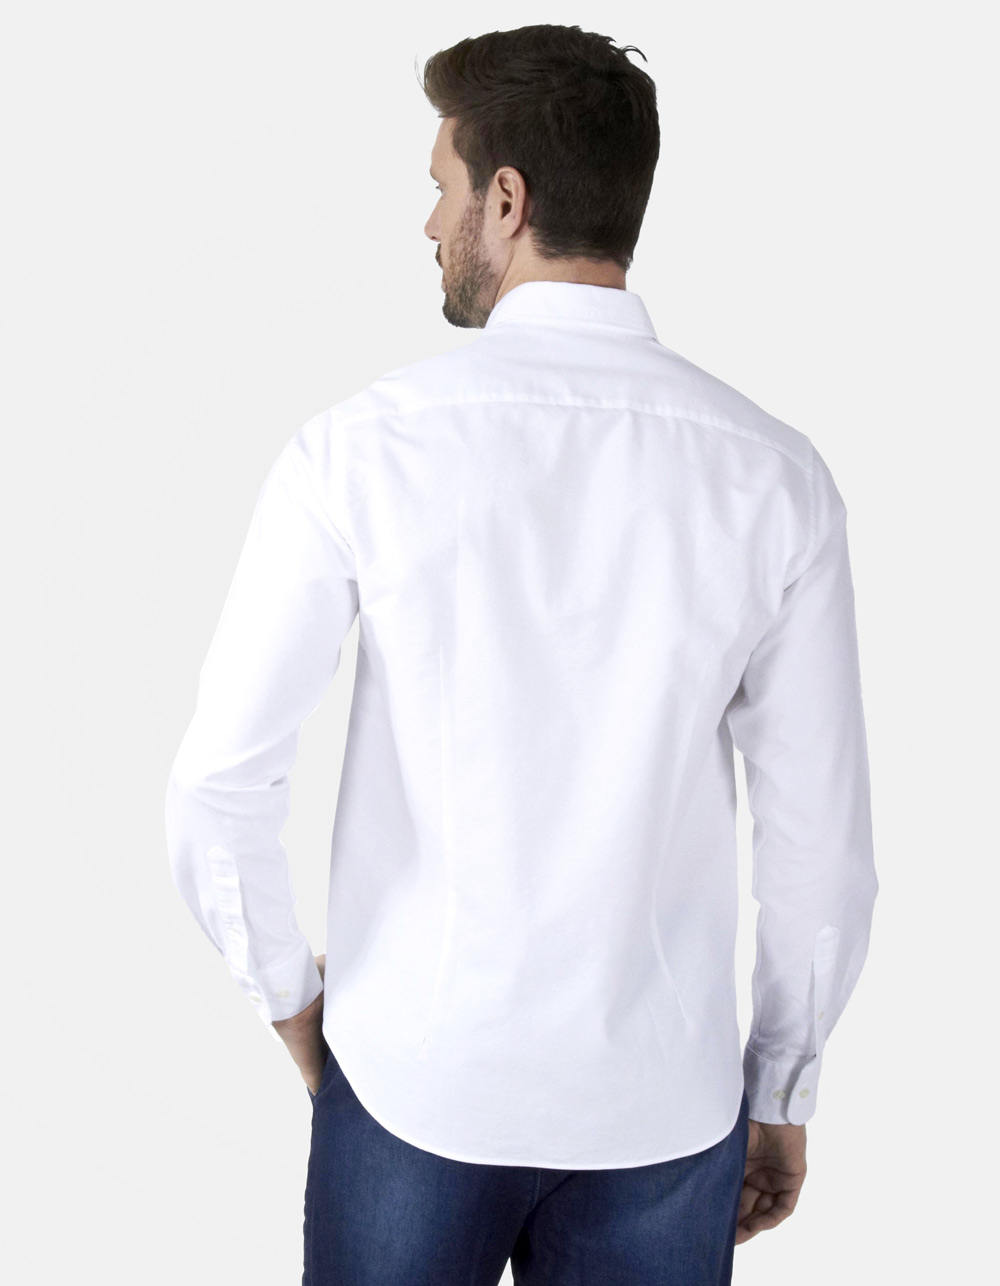 White Oxford plain shirt - Backside